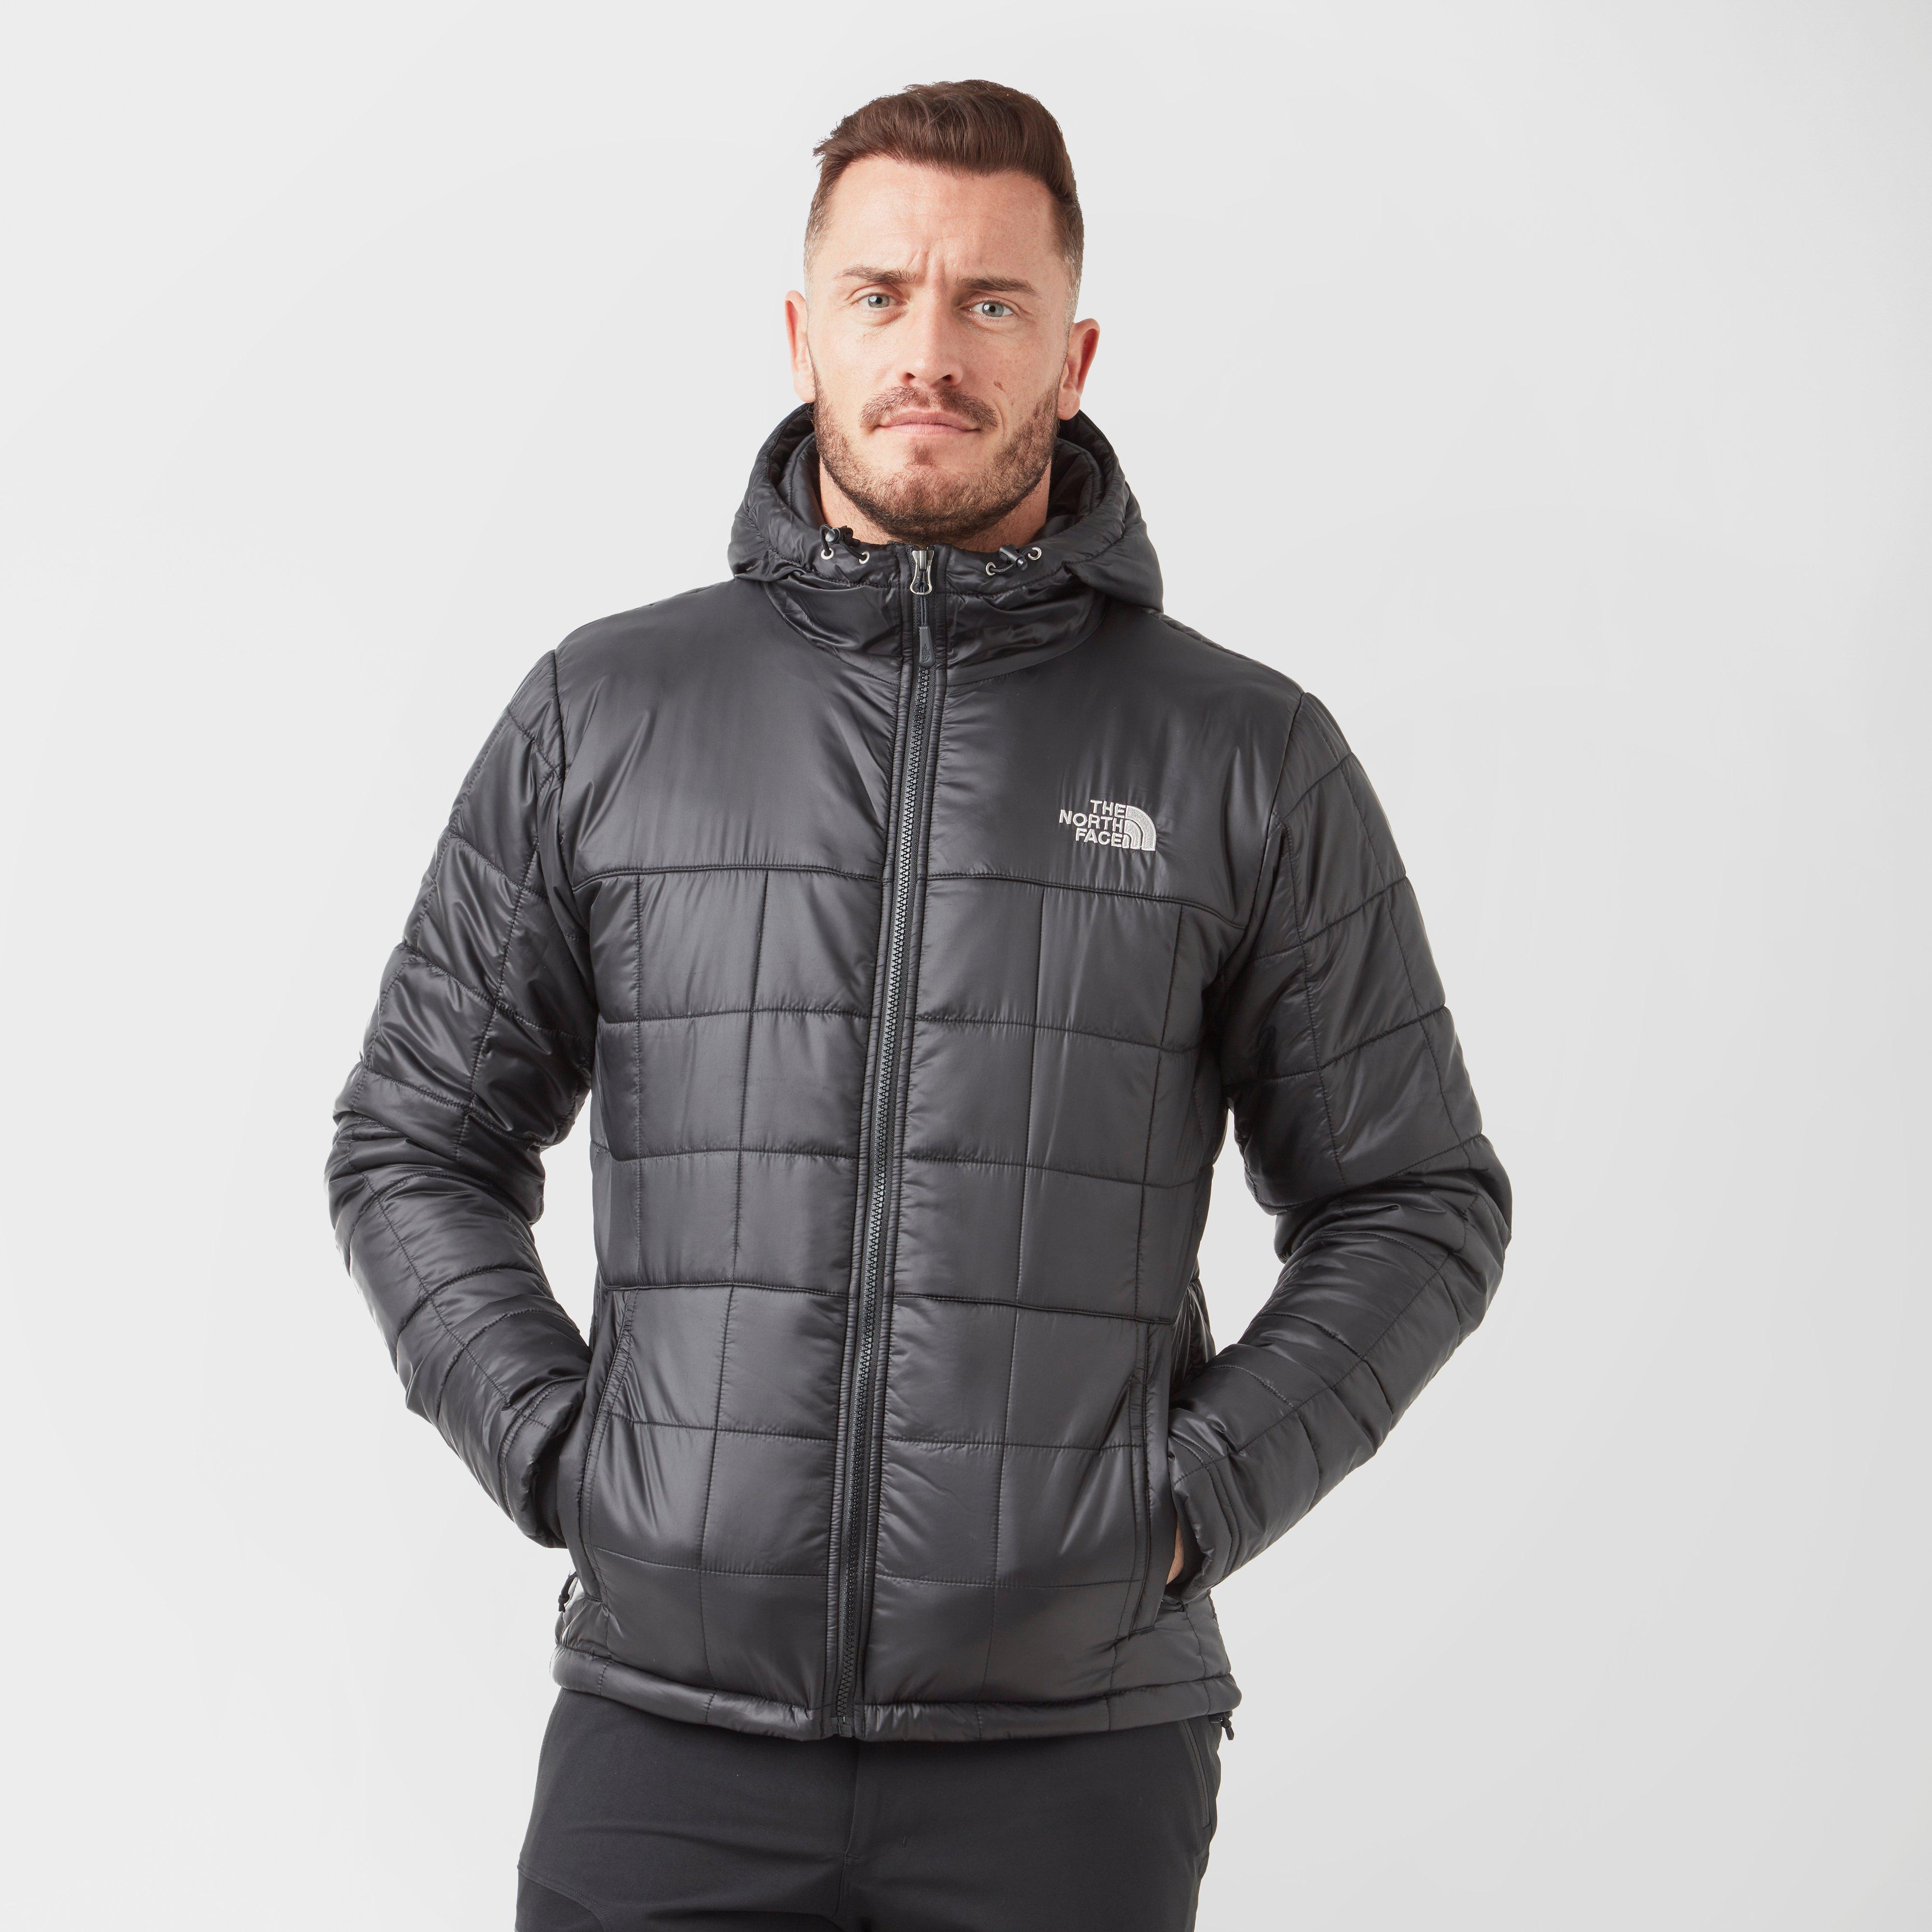 Product brands The North Face